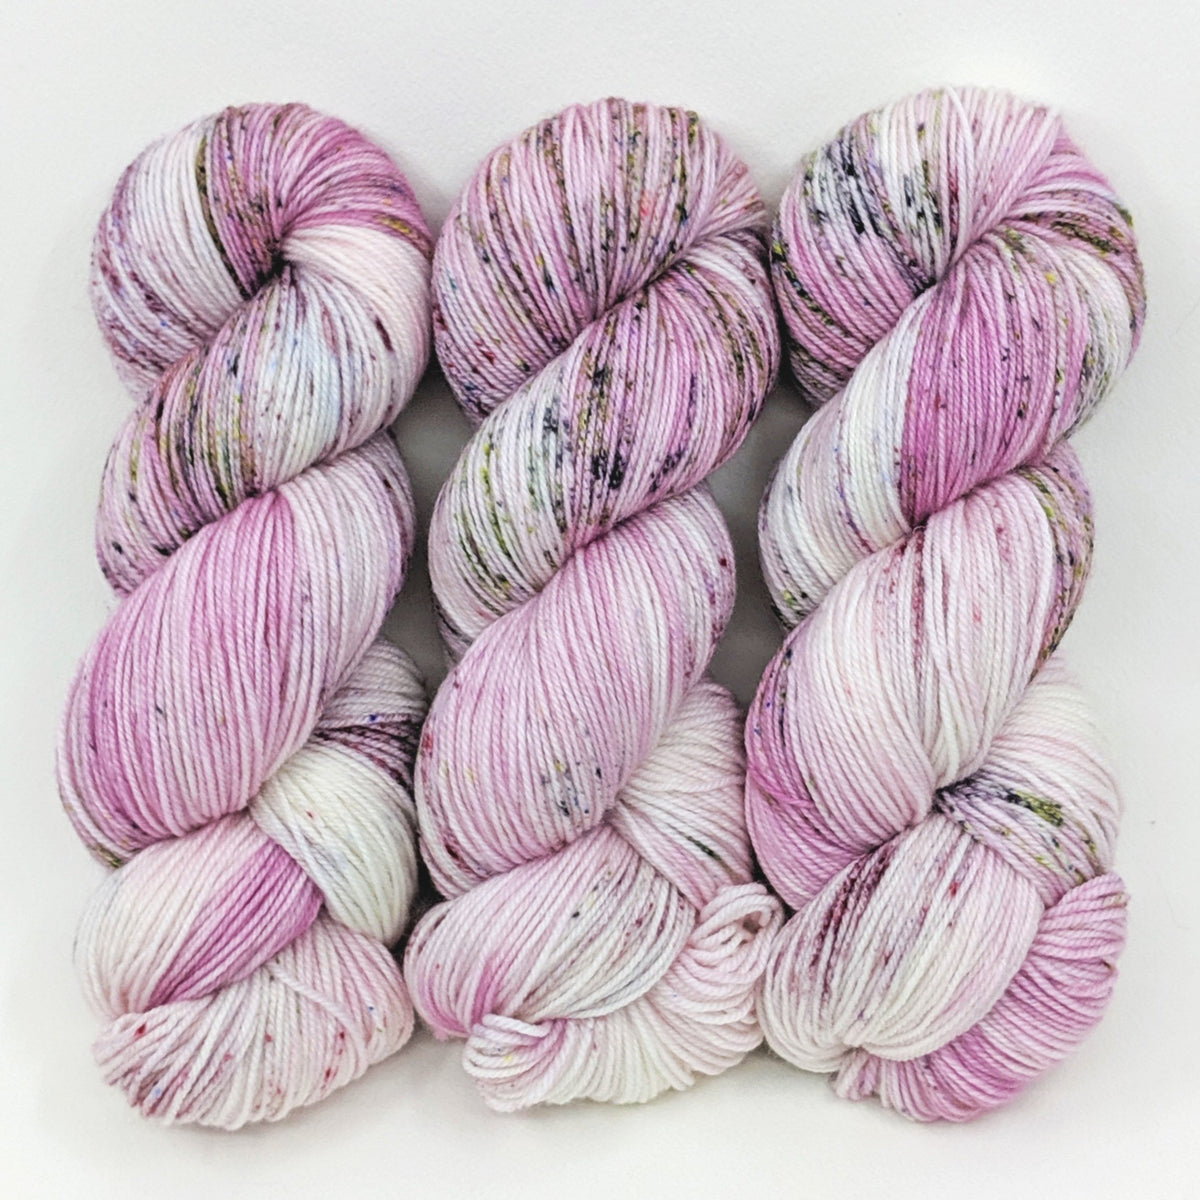 Tiny Orchid in Socknado Fingering - Dyed Stock